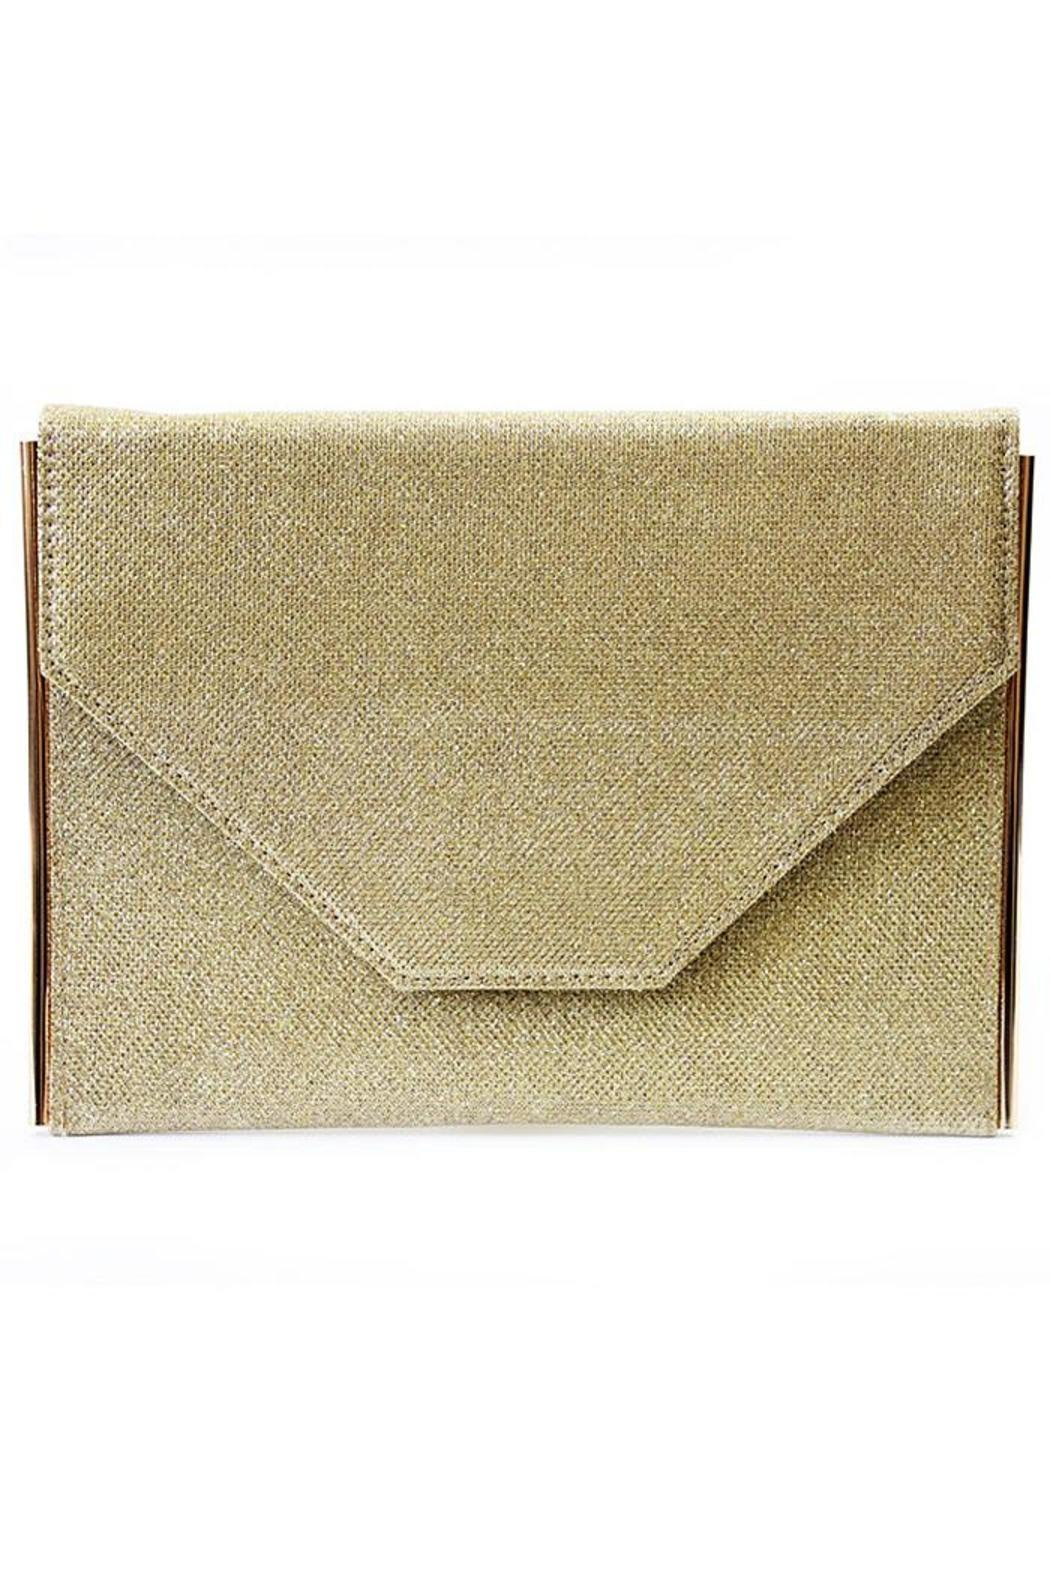 Stylish Envelope Clutch Shoptiques